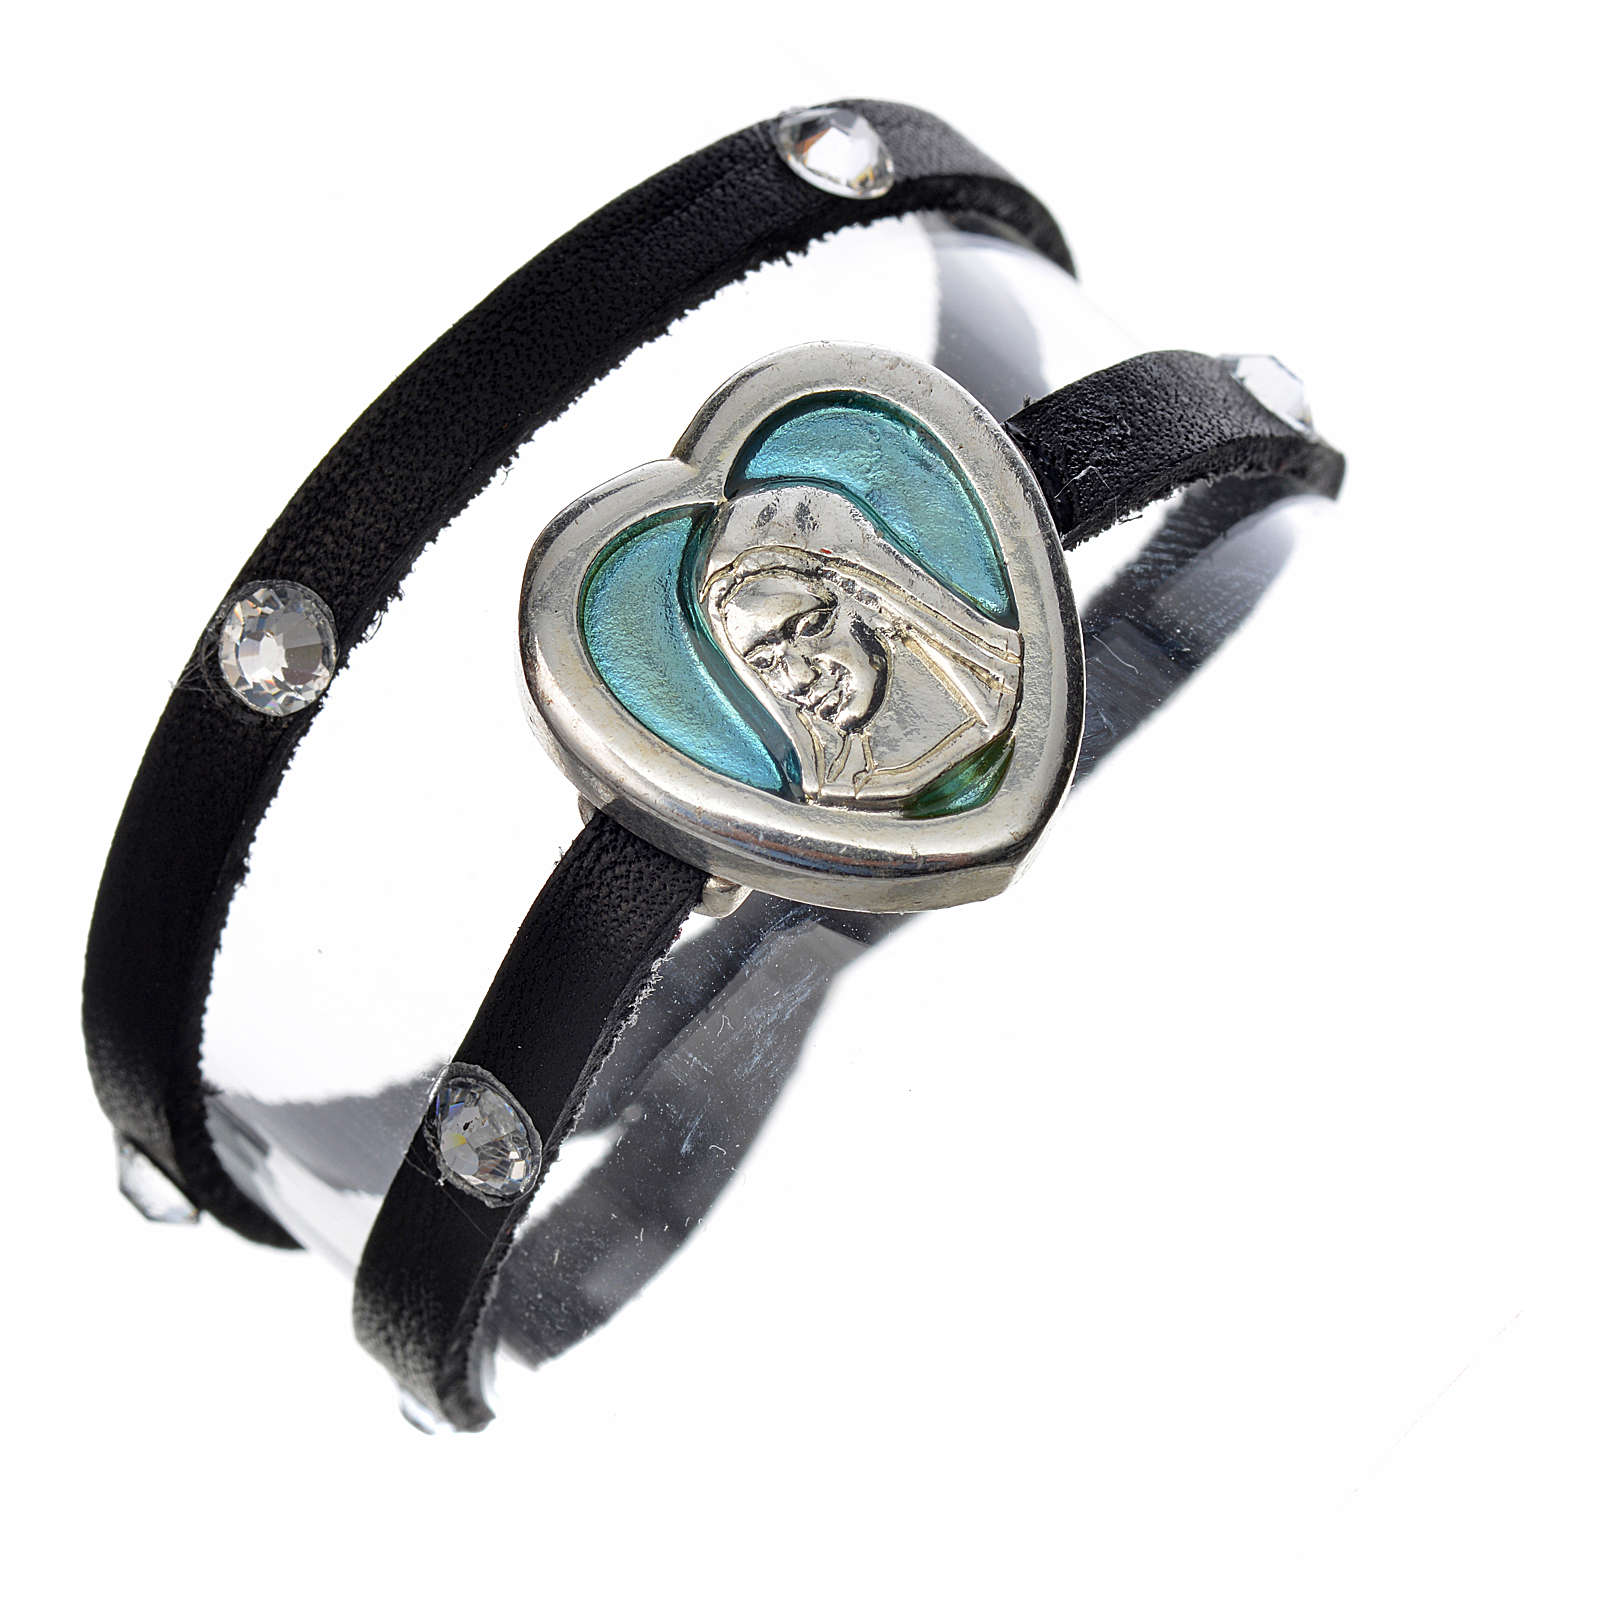 Bracelet black leather Swarovski Virgin Mary pendant blue enamel 4